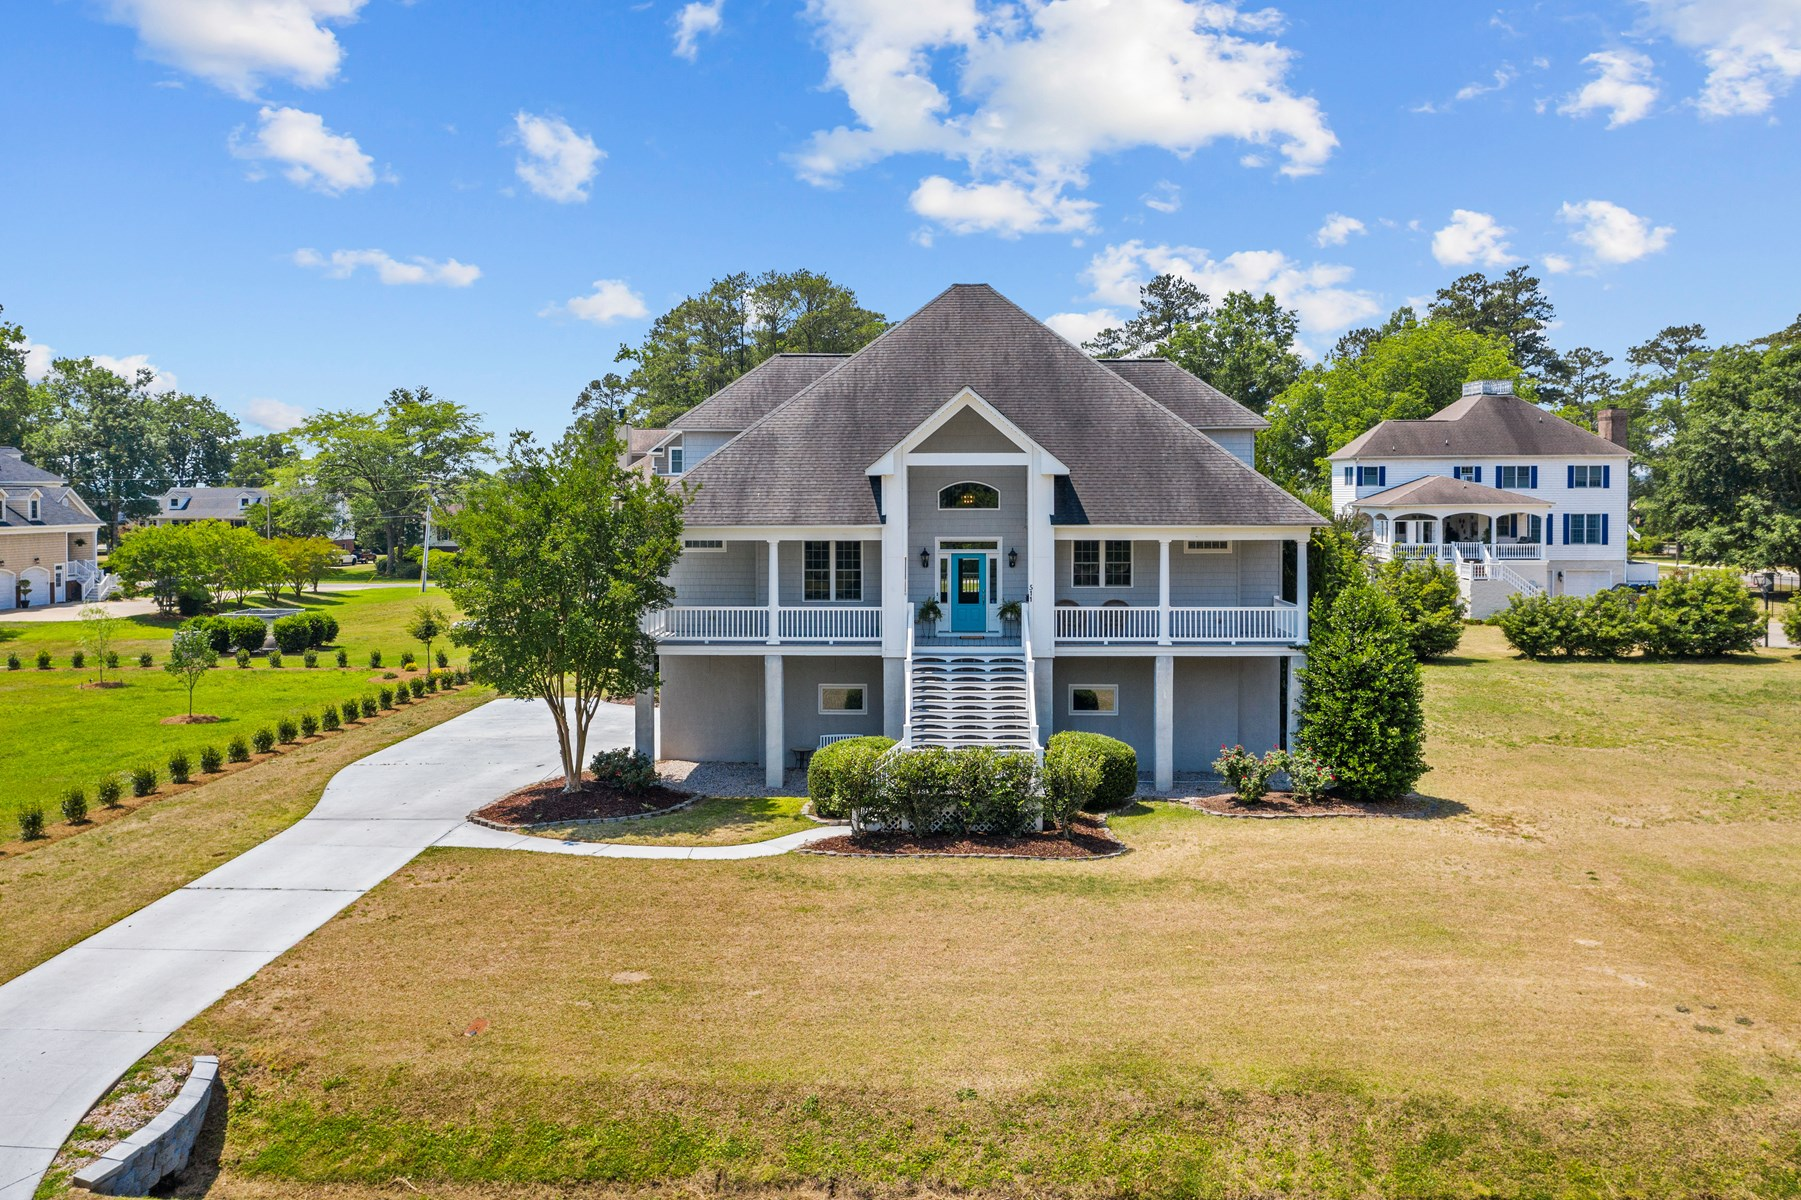 Home for sale in Washington, NC